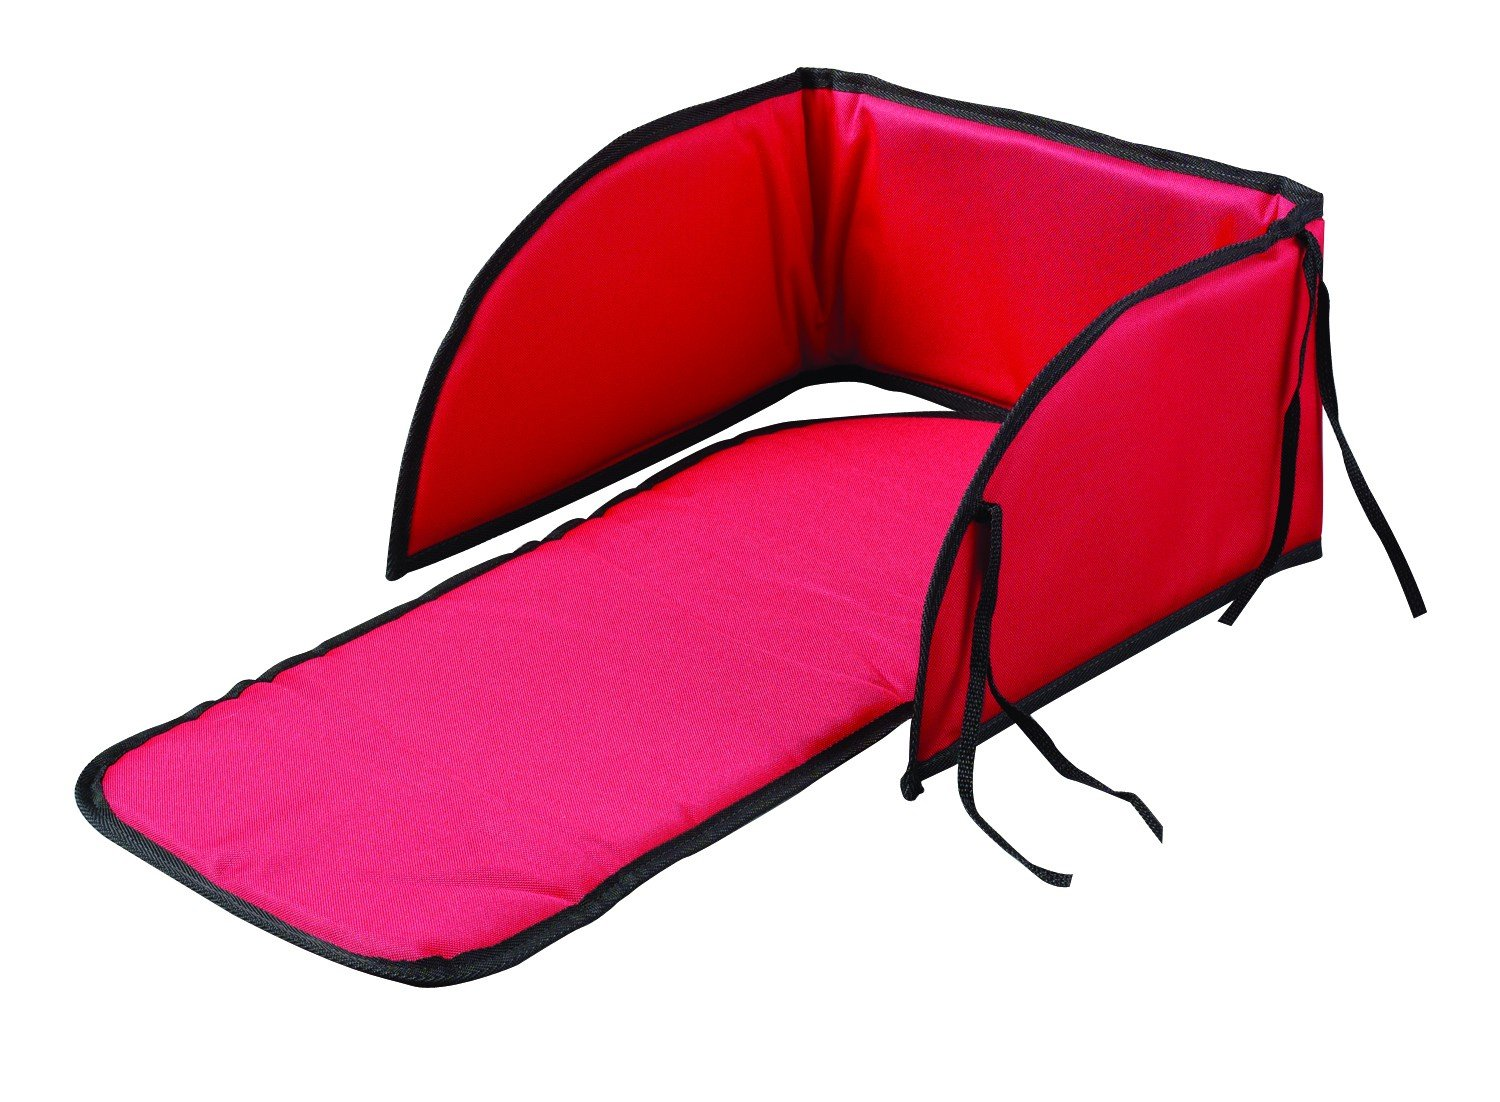 Flexible Flyer Pad for Baby Sleigh by Flexible Flyer